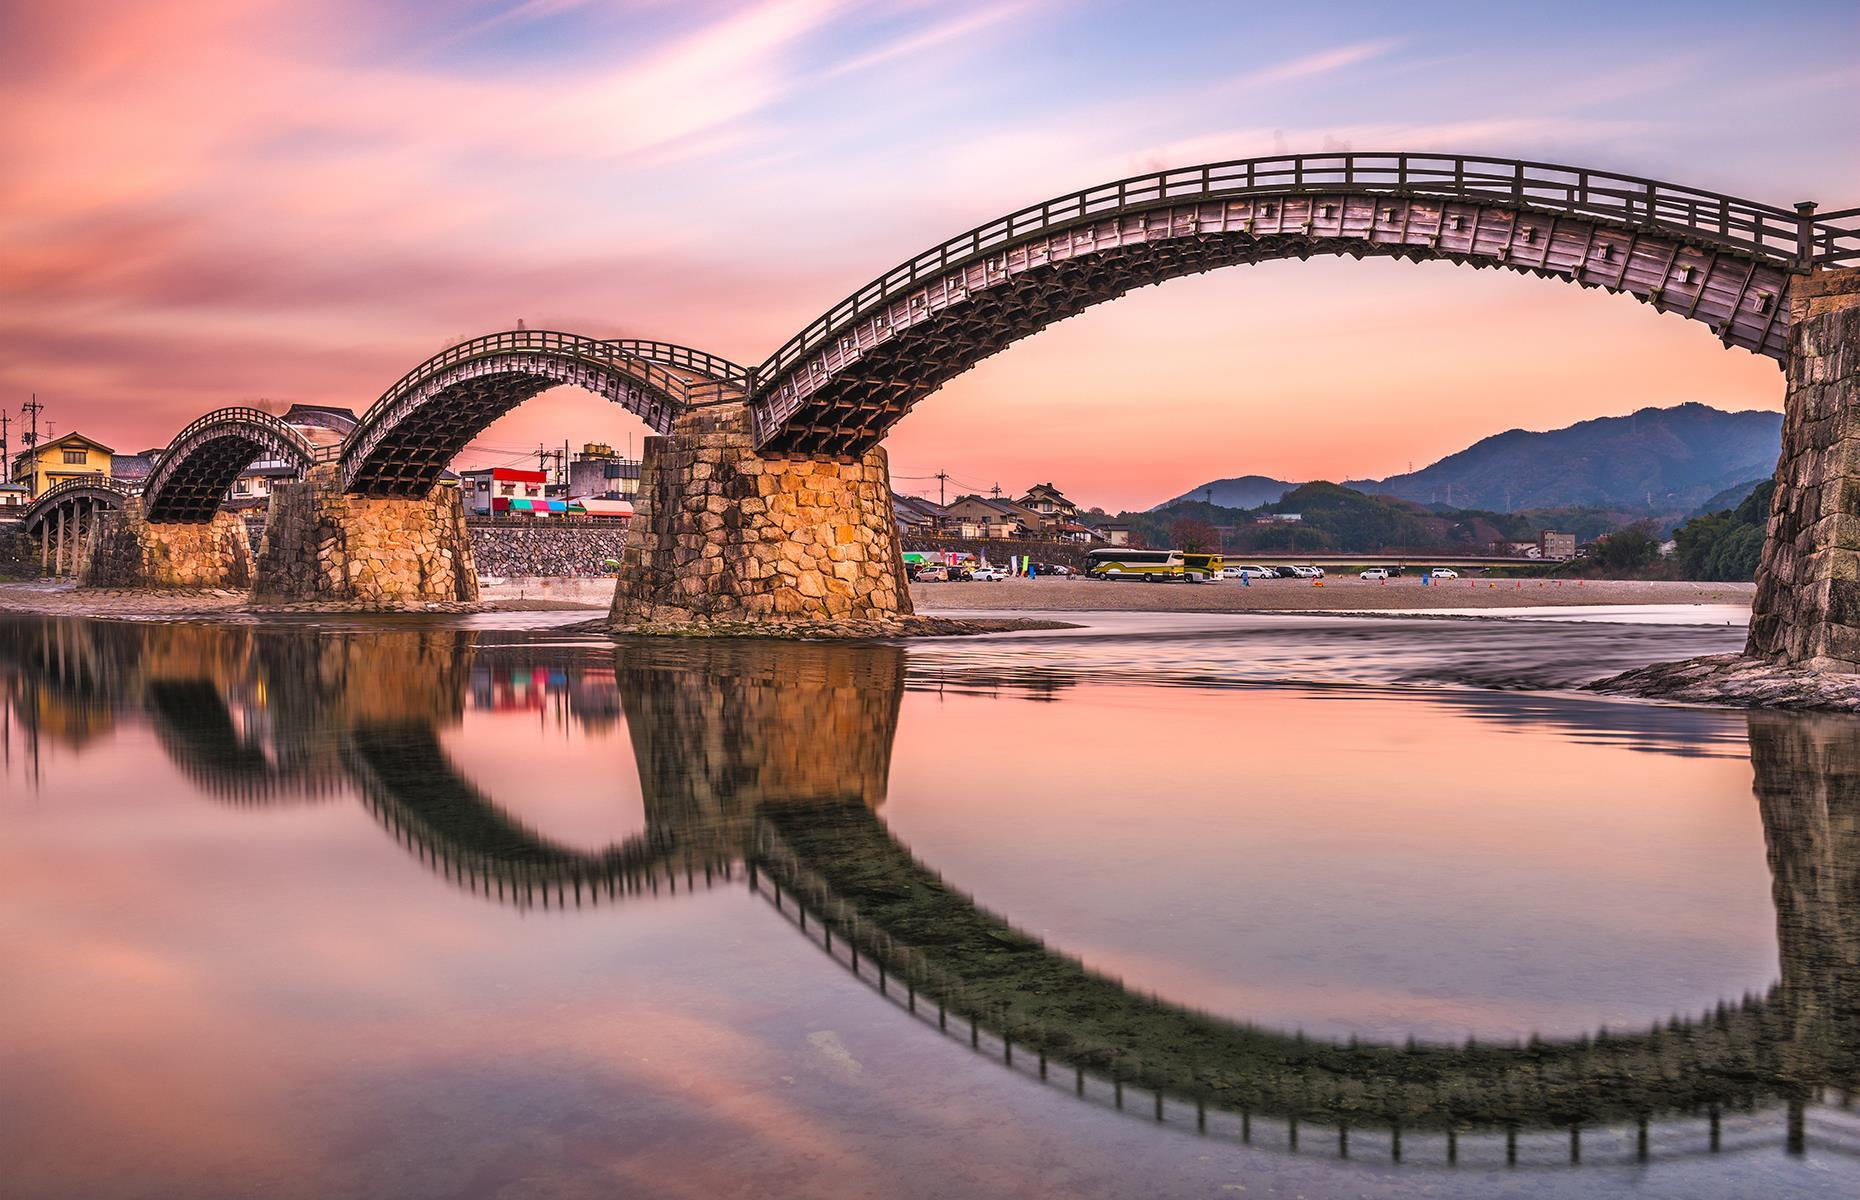 Slide 1 of 31: Whether it's a crumbling old aqueduct or a striking hi-tech construction, a bridge can tell you a surprising amount about a place and its history. Spanning everything from the ornate to the out-there, we've rounded up some of the world's most spectacular bridges.